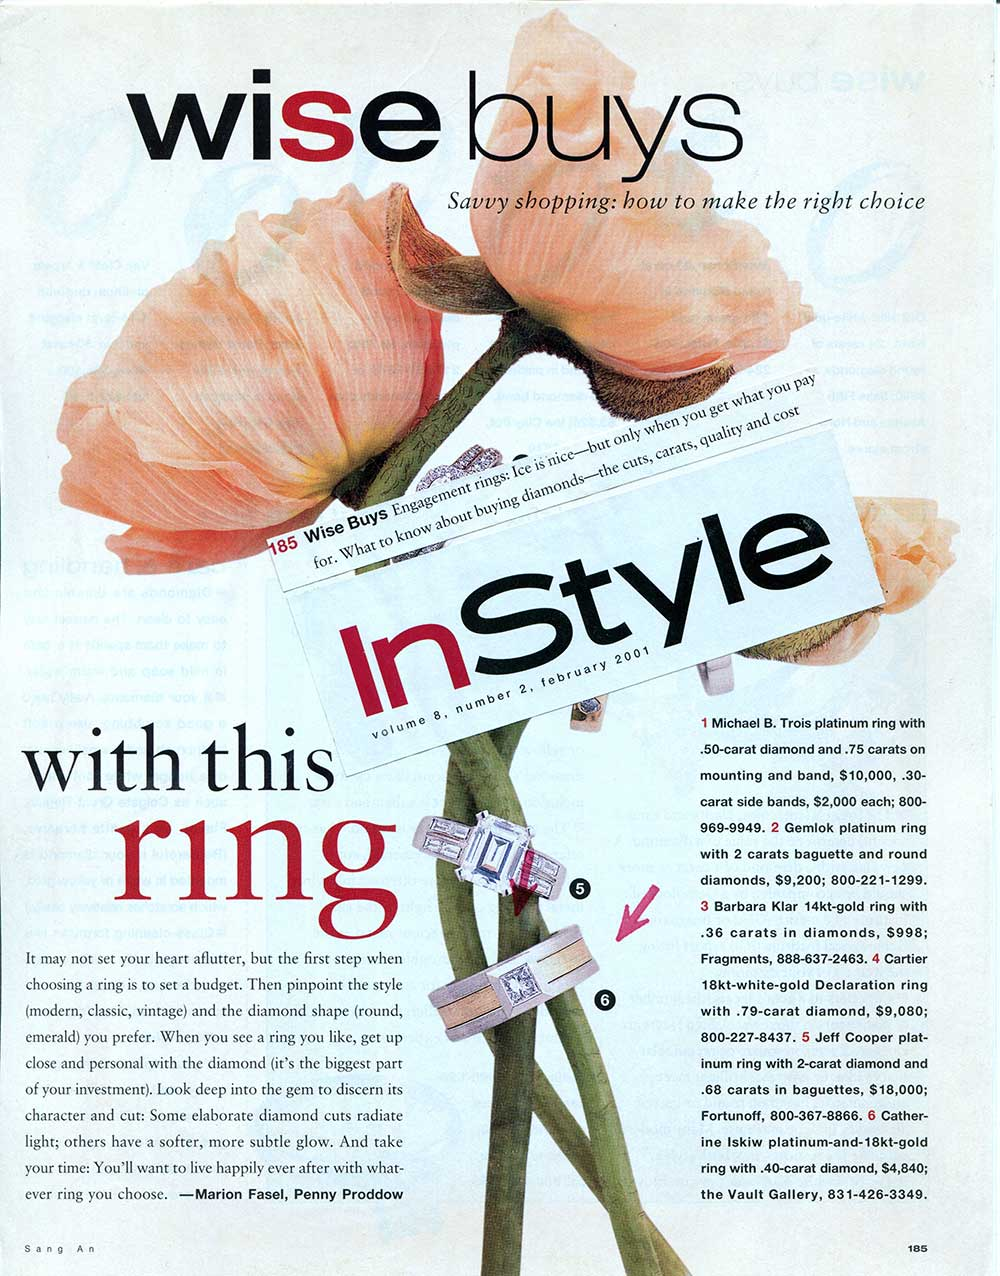 Clip from Instyle magazine showing the Wisebuys page with large peach peonies, a Series 14 ring and another diamond ring.